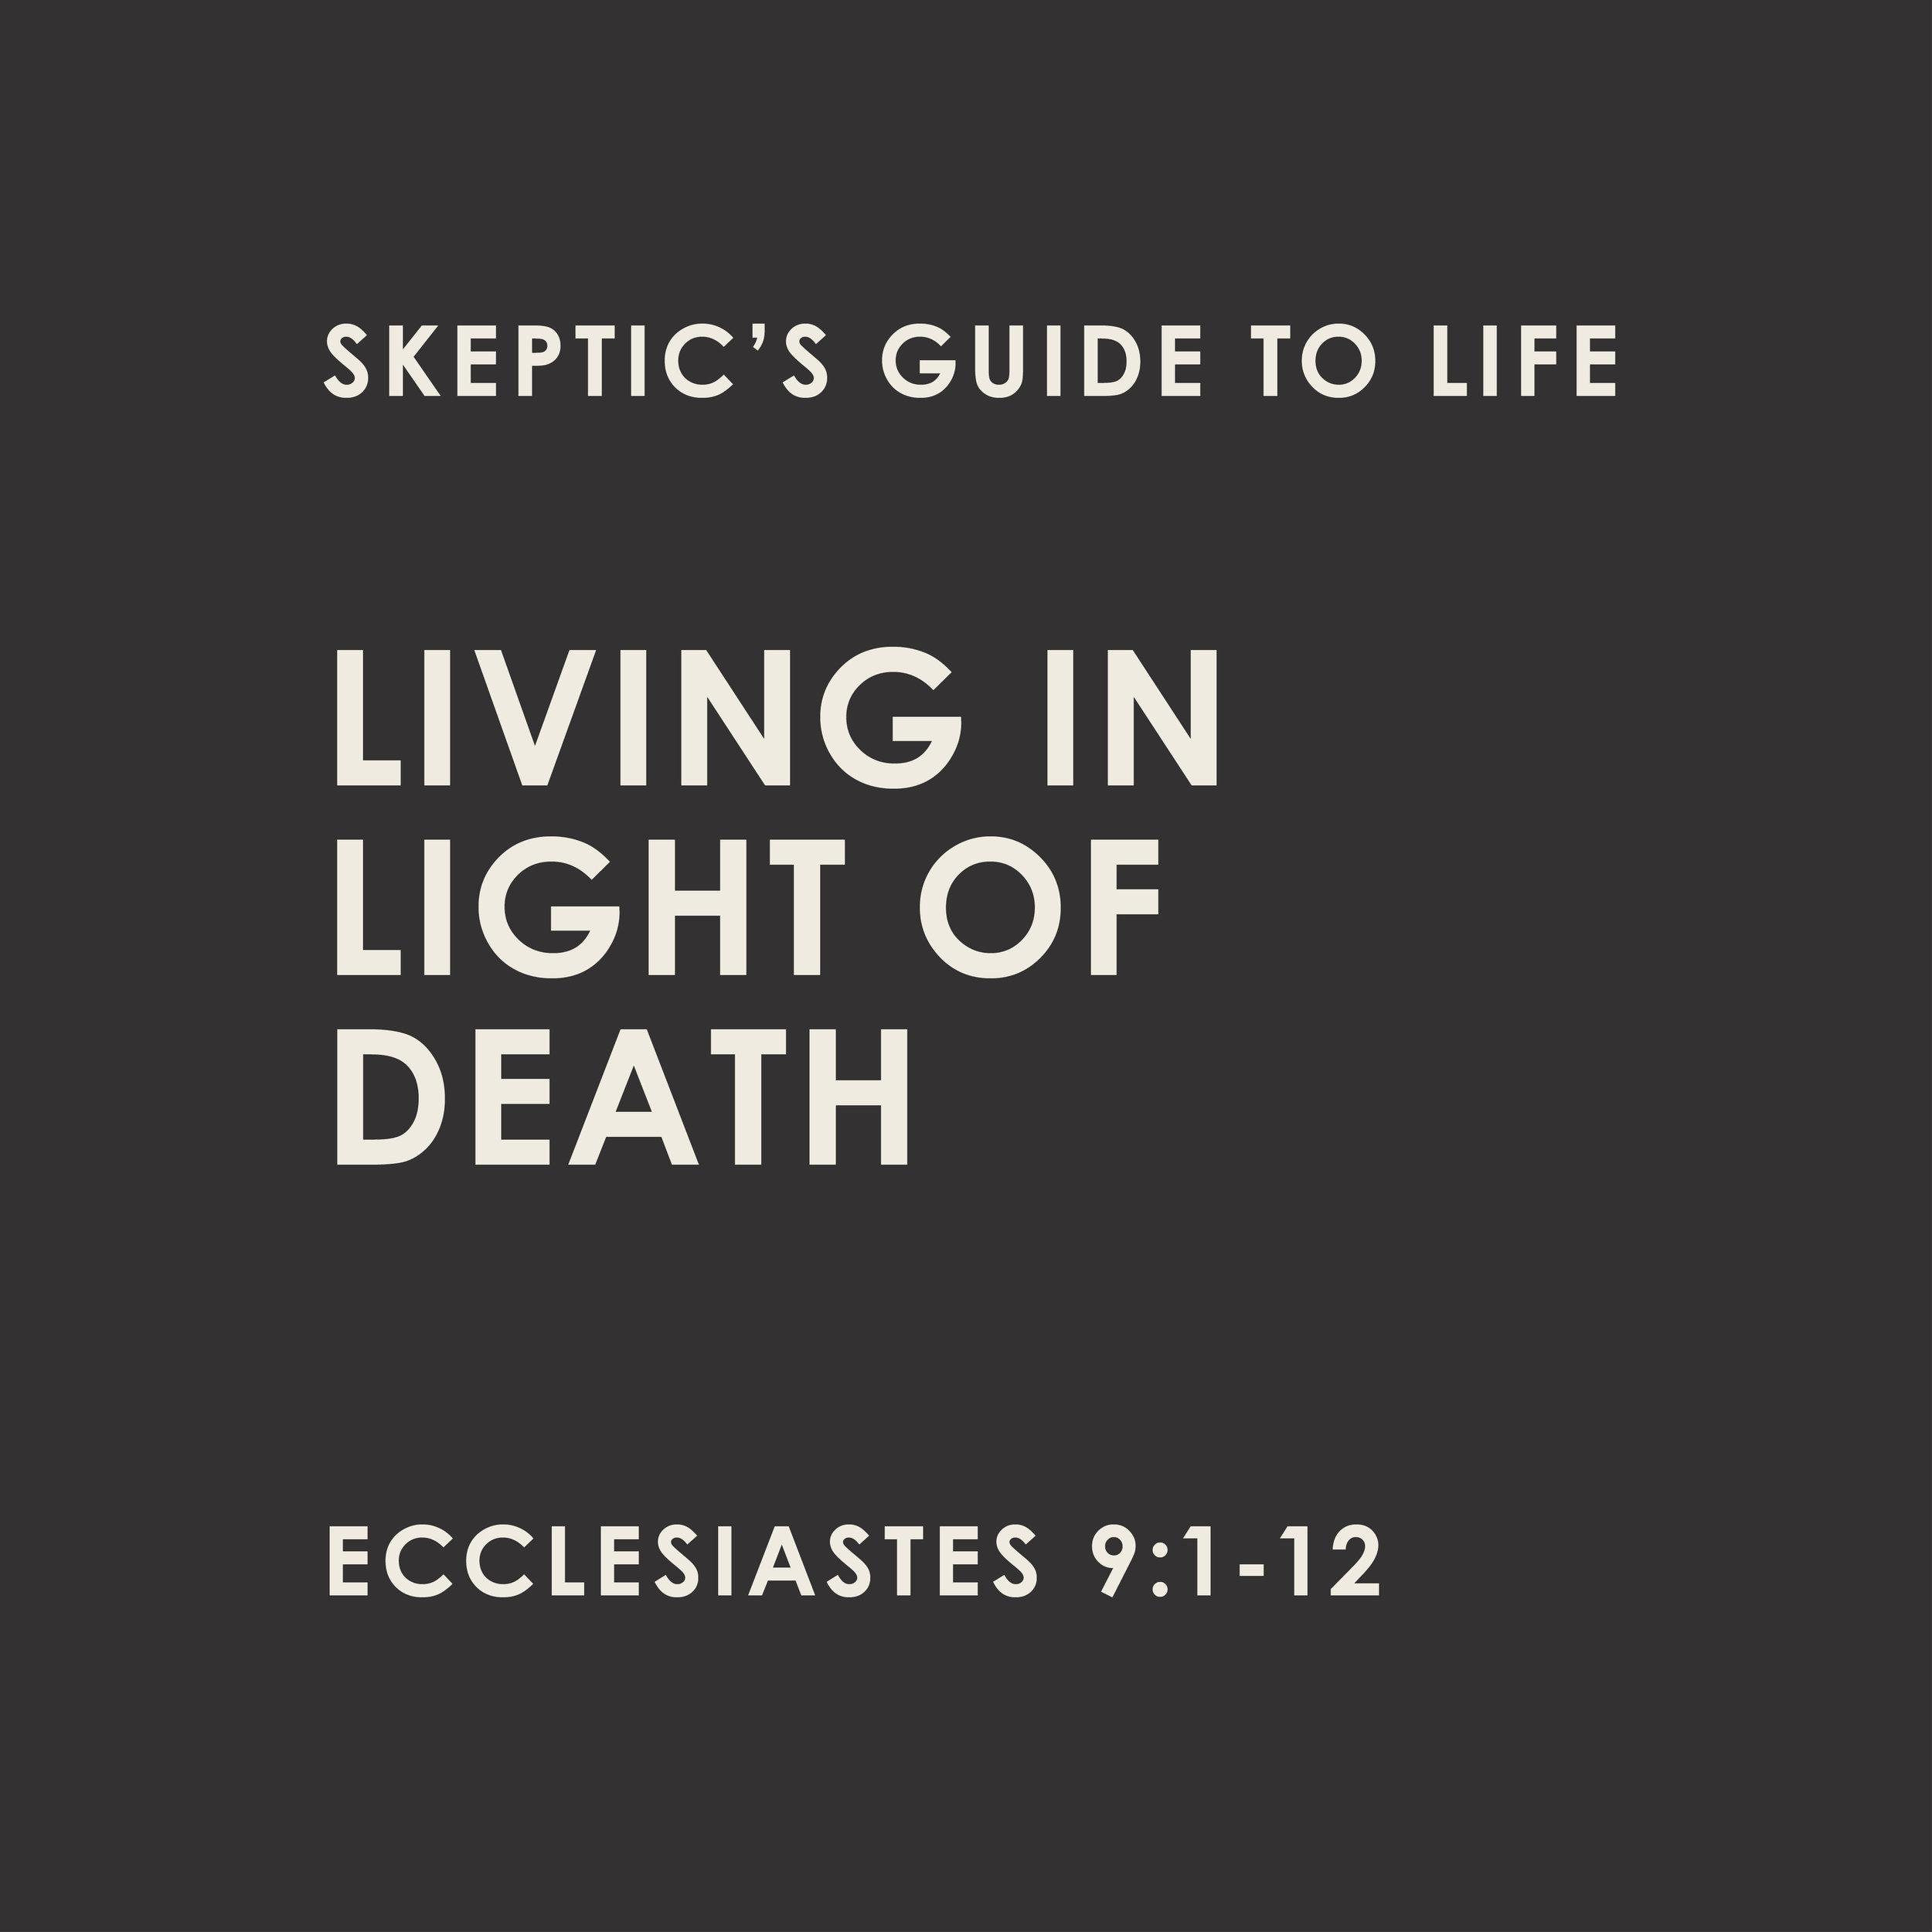 Learning how to live well by understanding the realities of death -